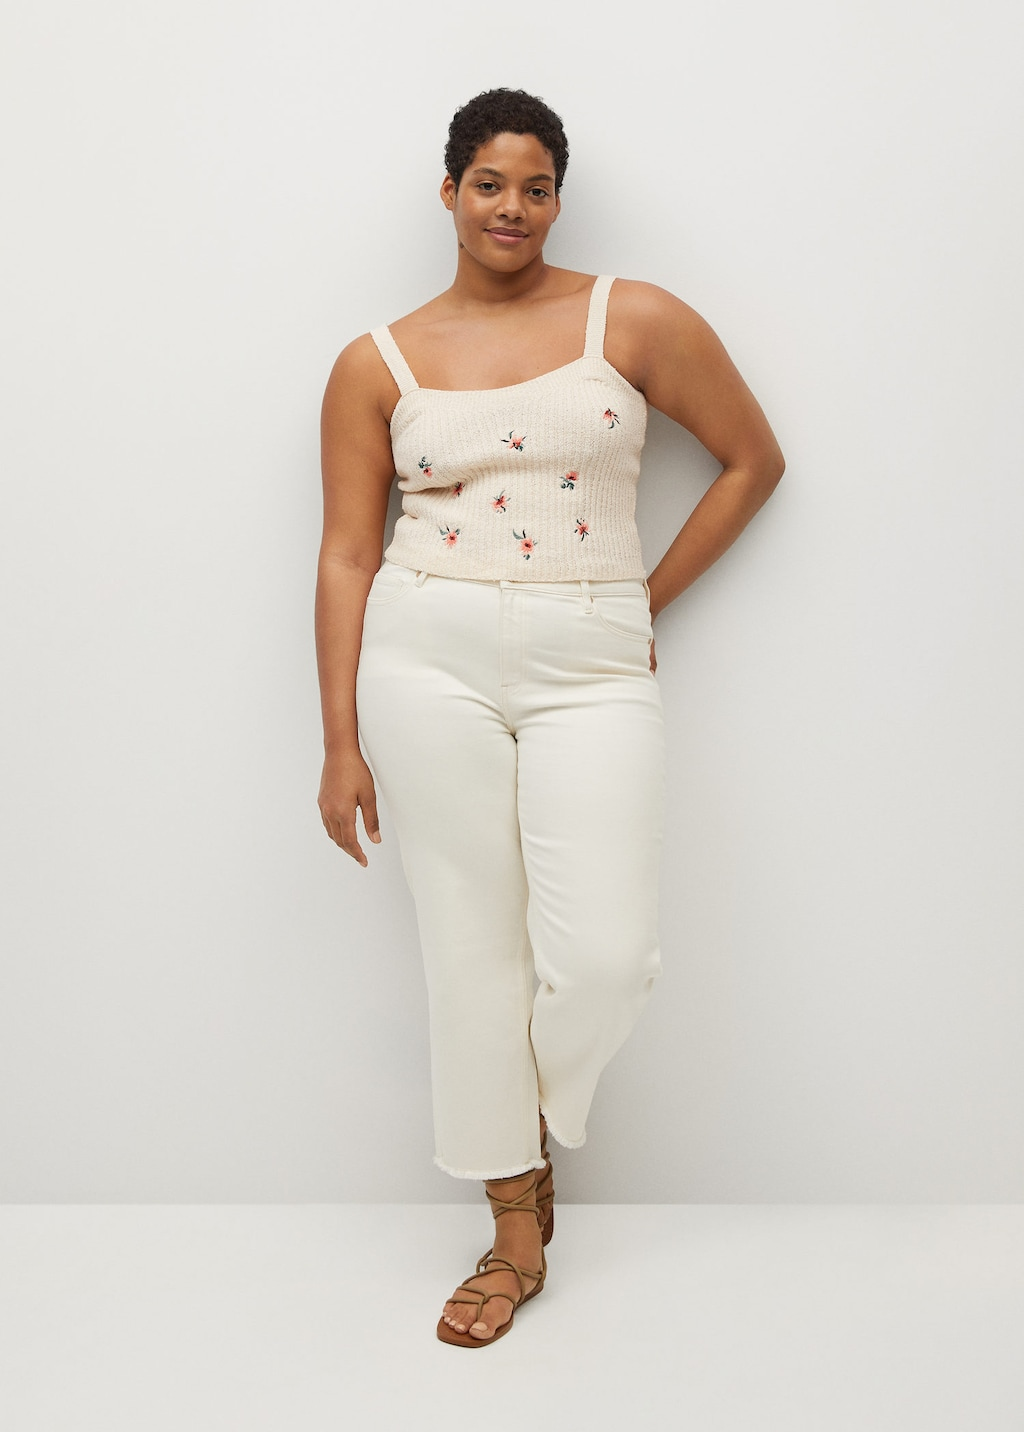 Statement-Making Plus Size Spring Trends - knit wear